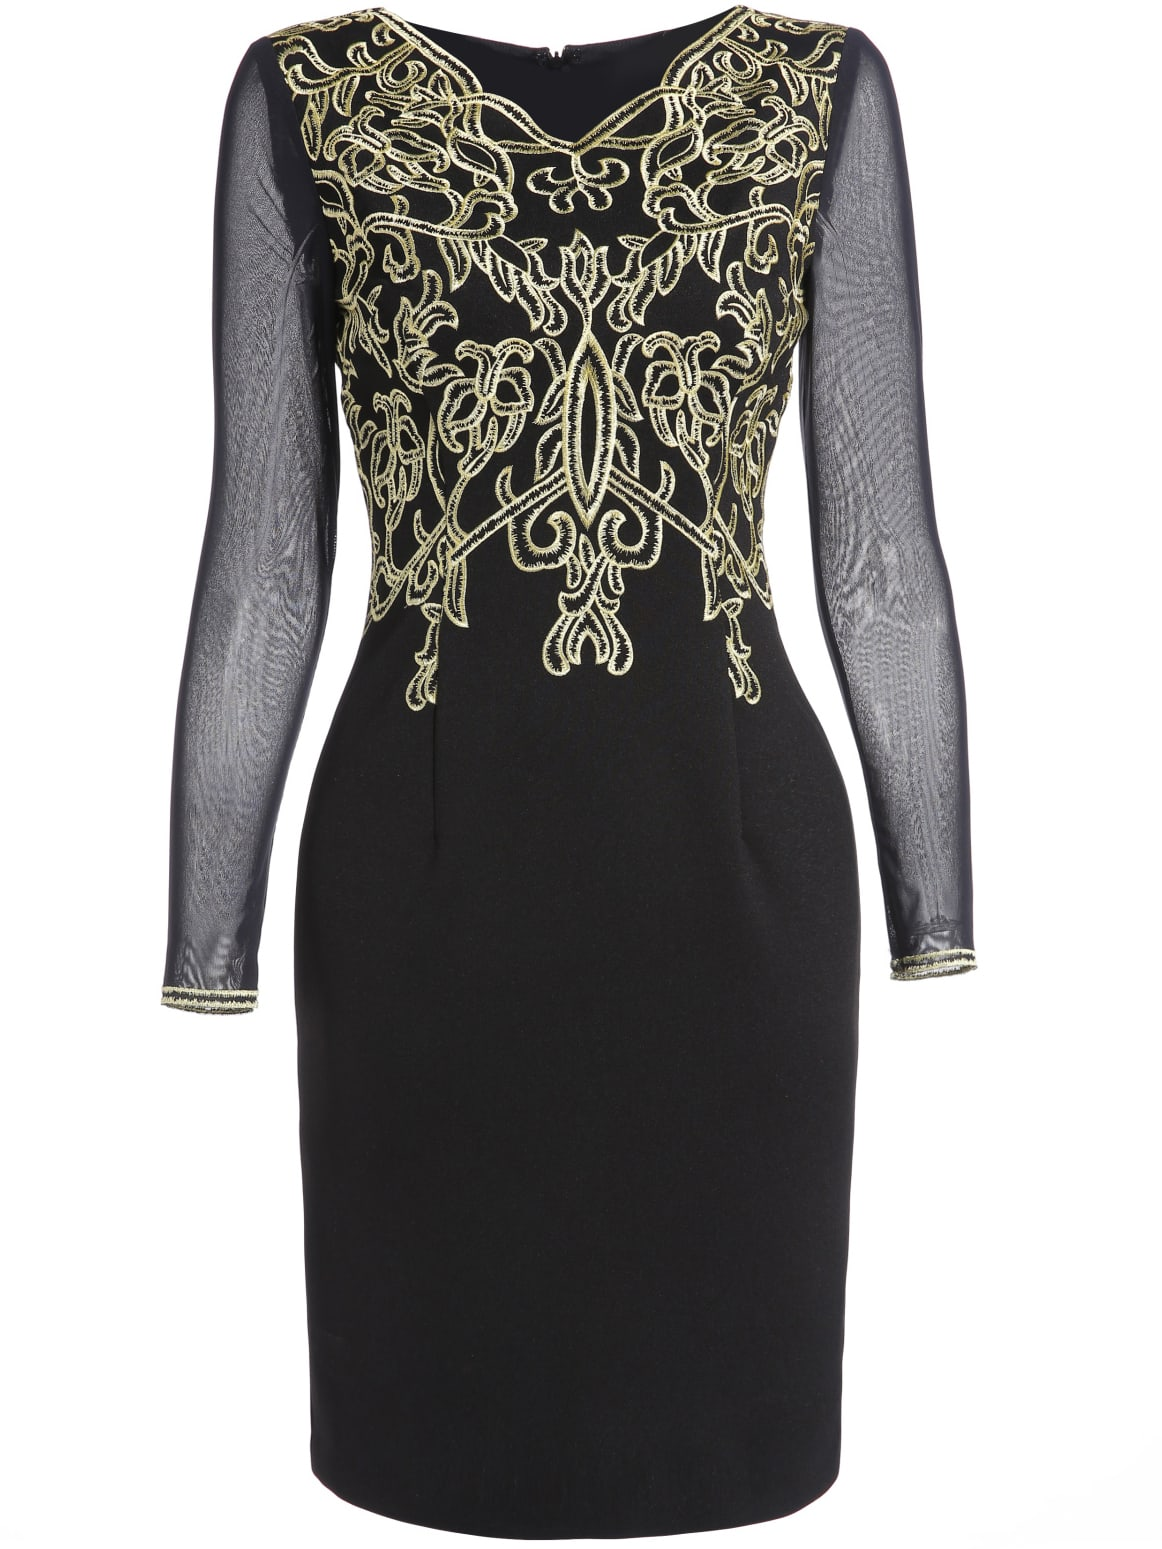 Black Round Neck Long Sleeve Contrast Gauze Embroidered Dress